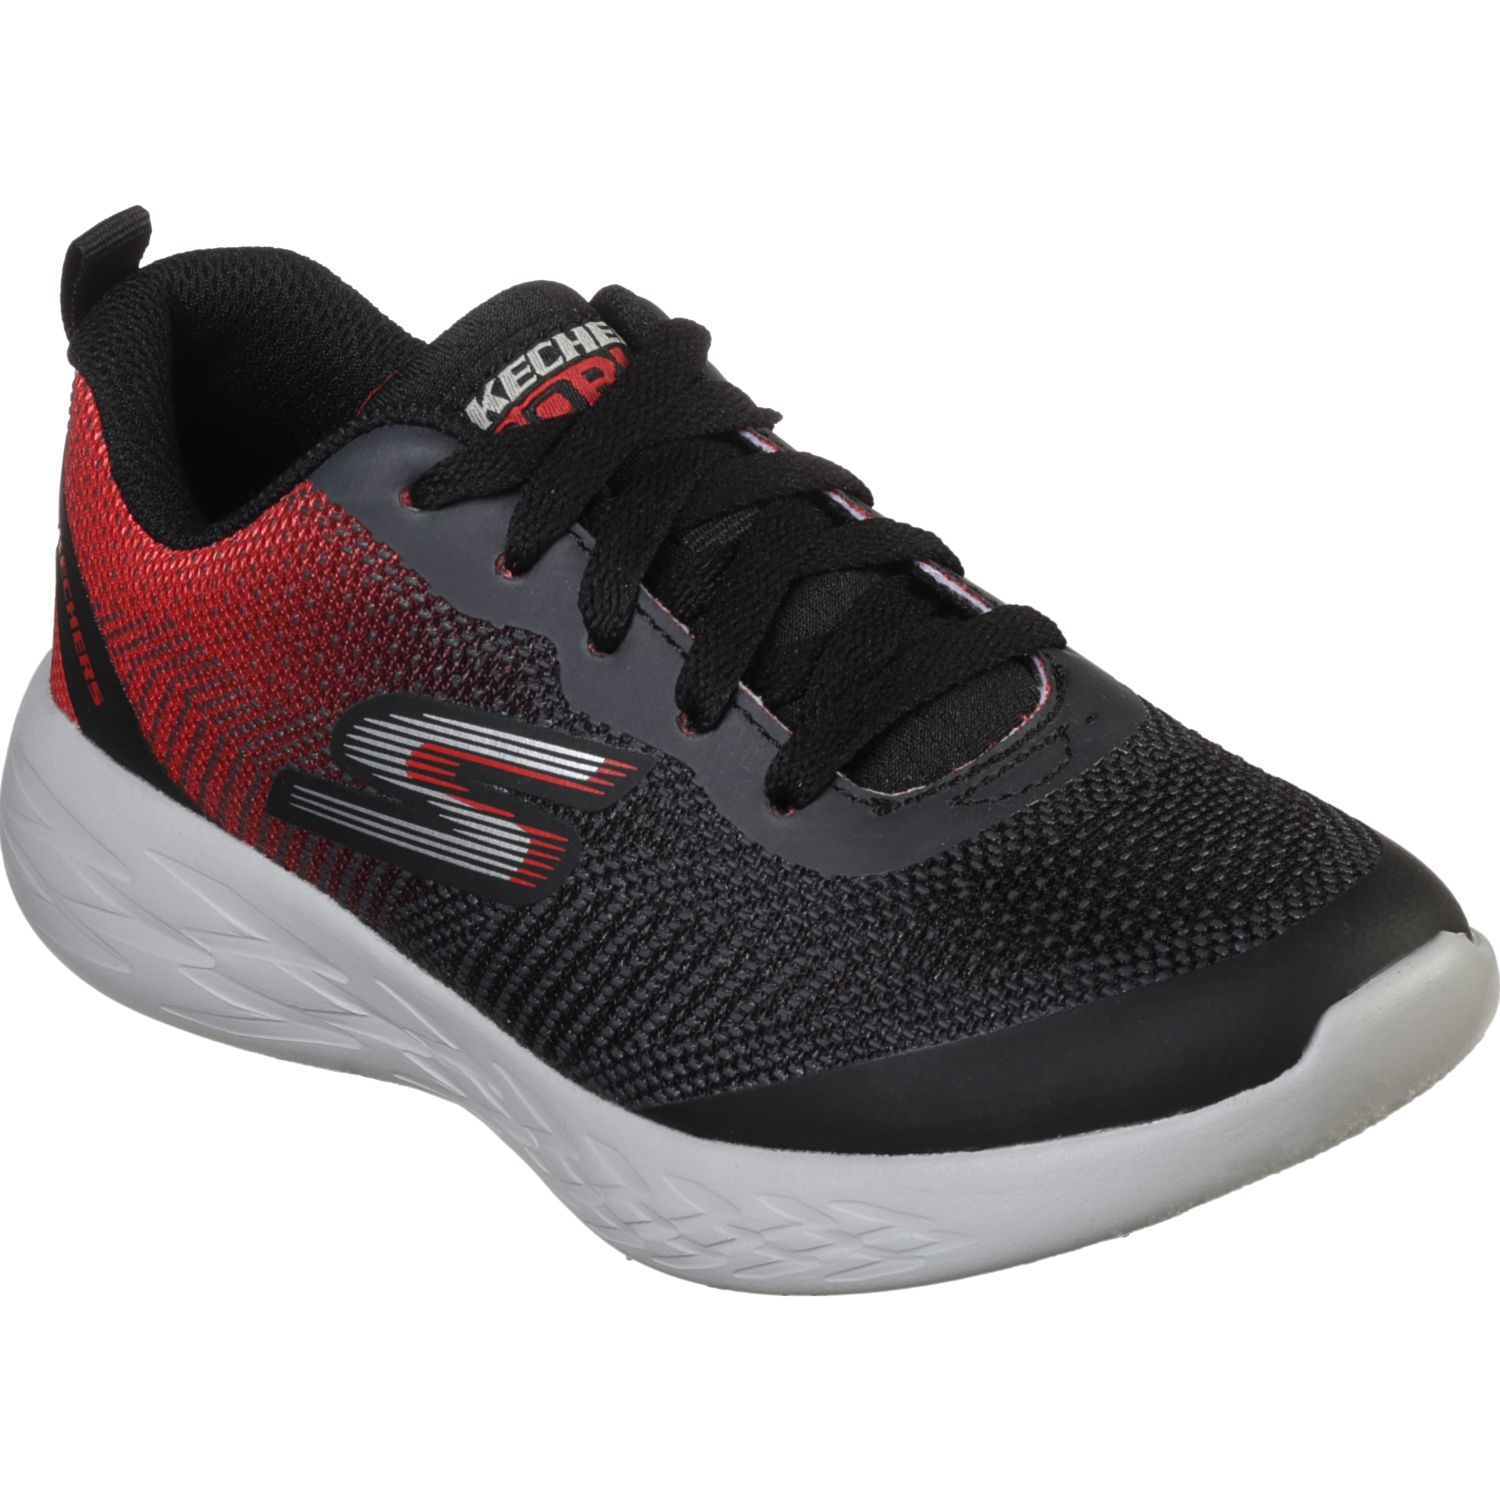 Skechers go run 600 - haddox Negro / rojo Walking